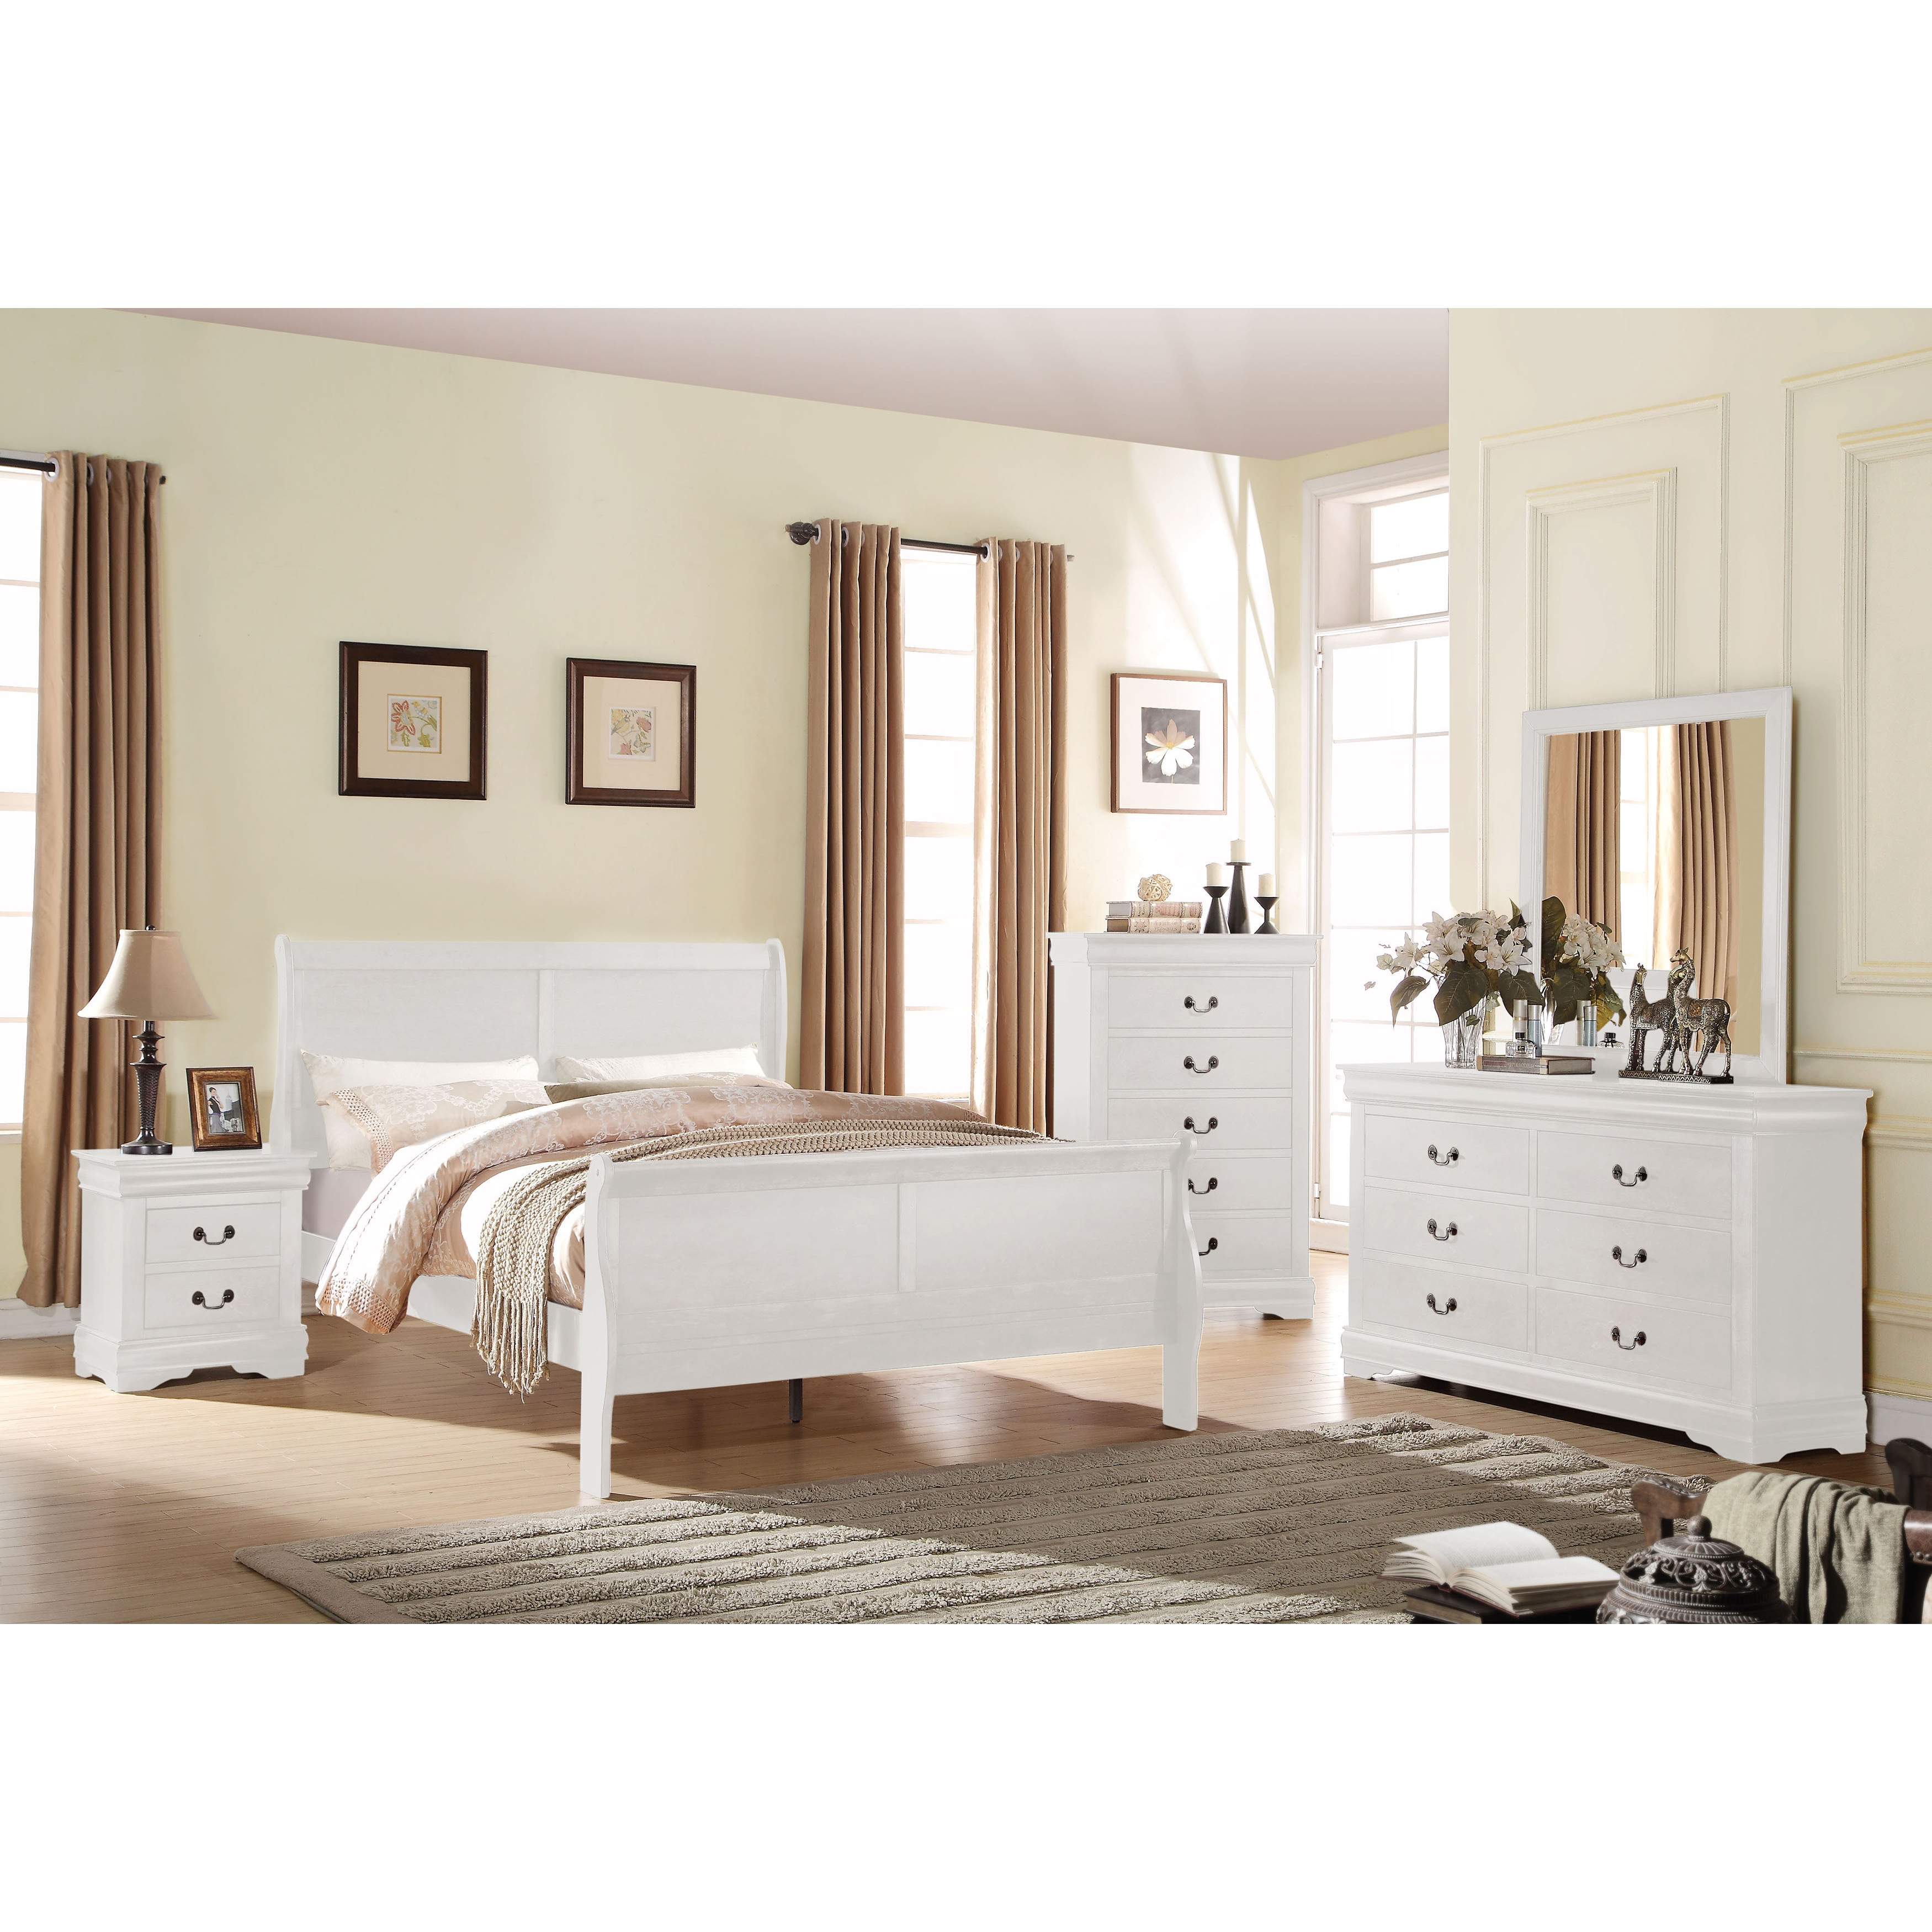 Acme Furniture Louis Philippe White 4 Piece Sleigh Bedroom Set On Sale Overstock 14229930 Twin